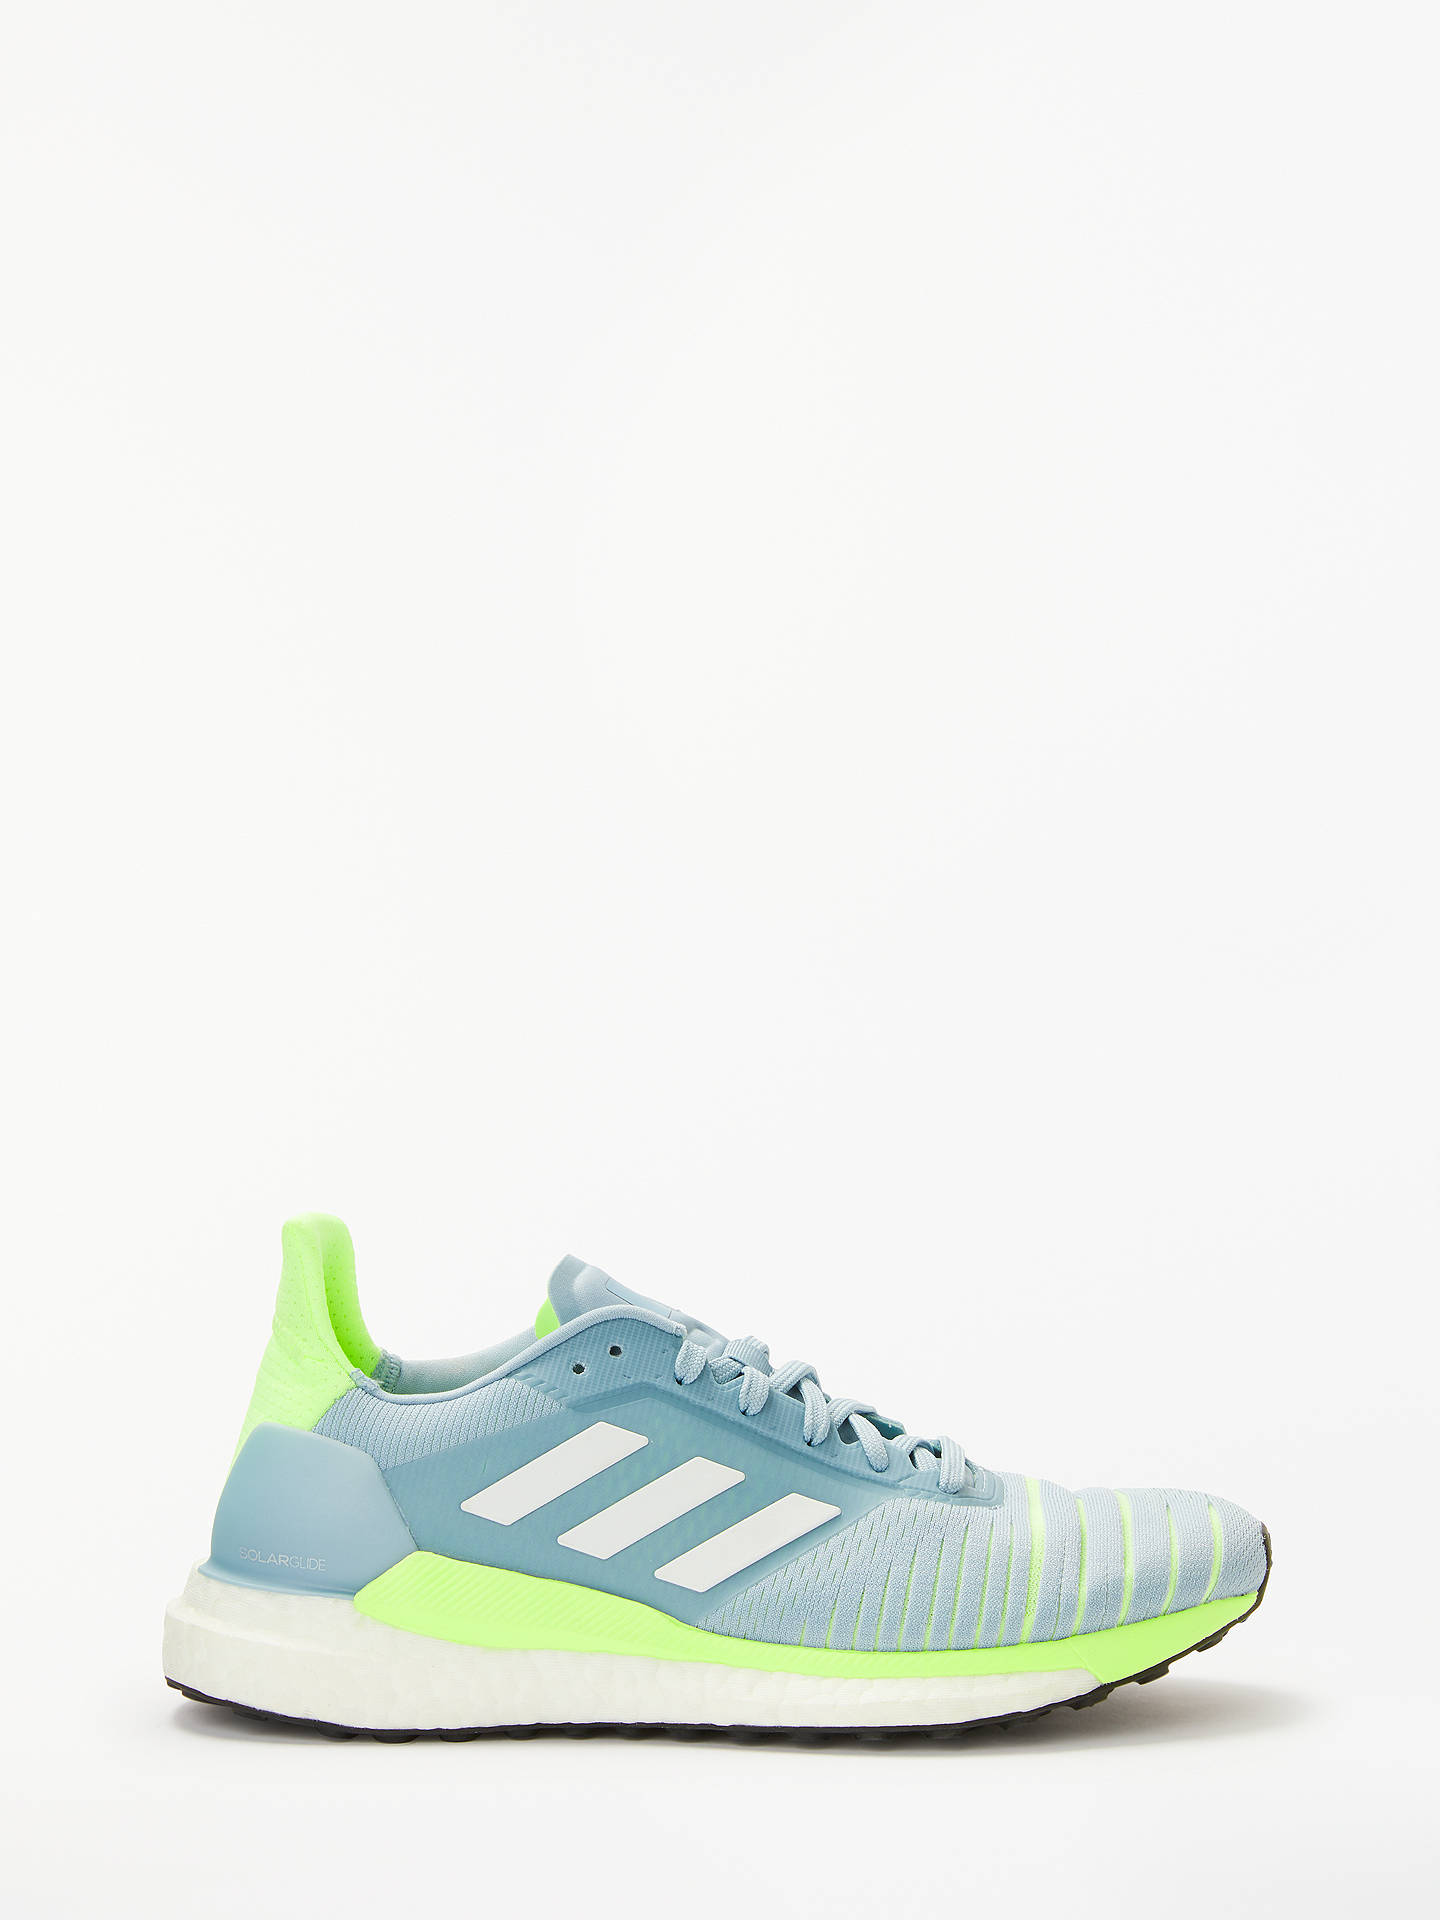 70841d41fac27 adidas Solar Glide Women s Running Shoes at John Lewis   Partners